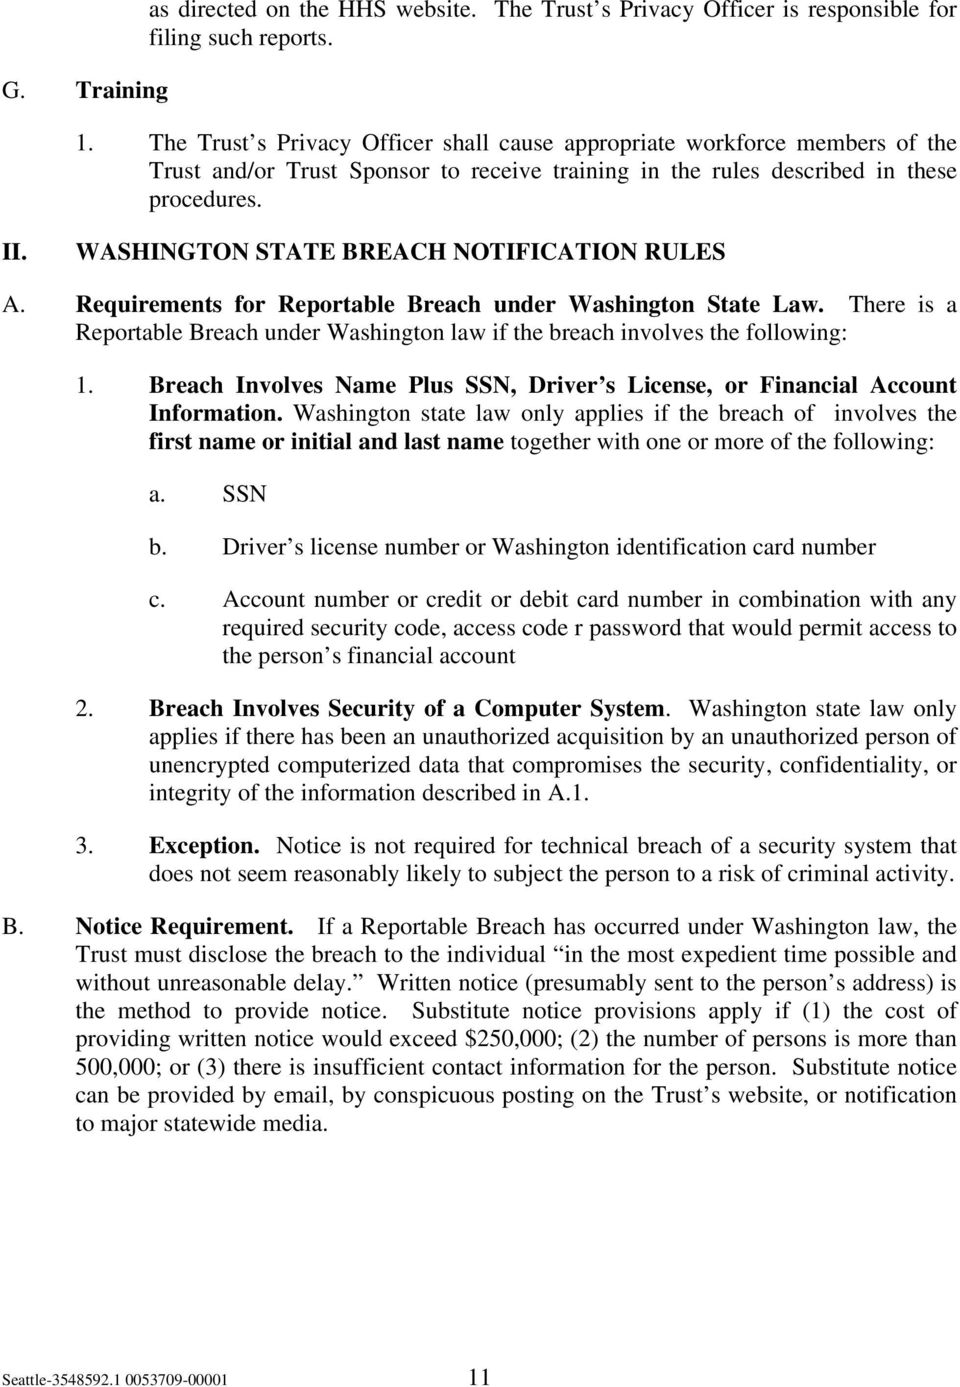 WASHINGTON STATE BREACH NOTIFICATION RULES A. Requirements for Reportable Breach under Washington State Law. There is a Reportable Breach under Washington law if the breach involves the following: 1.